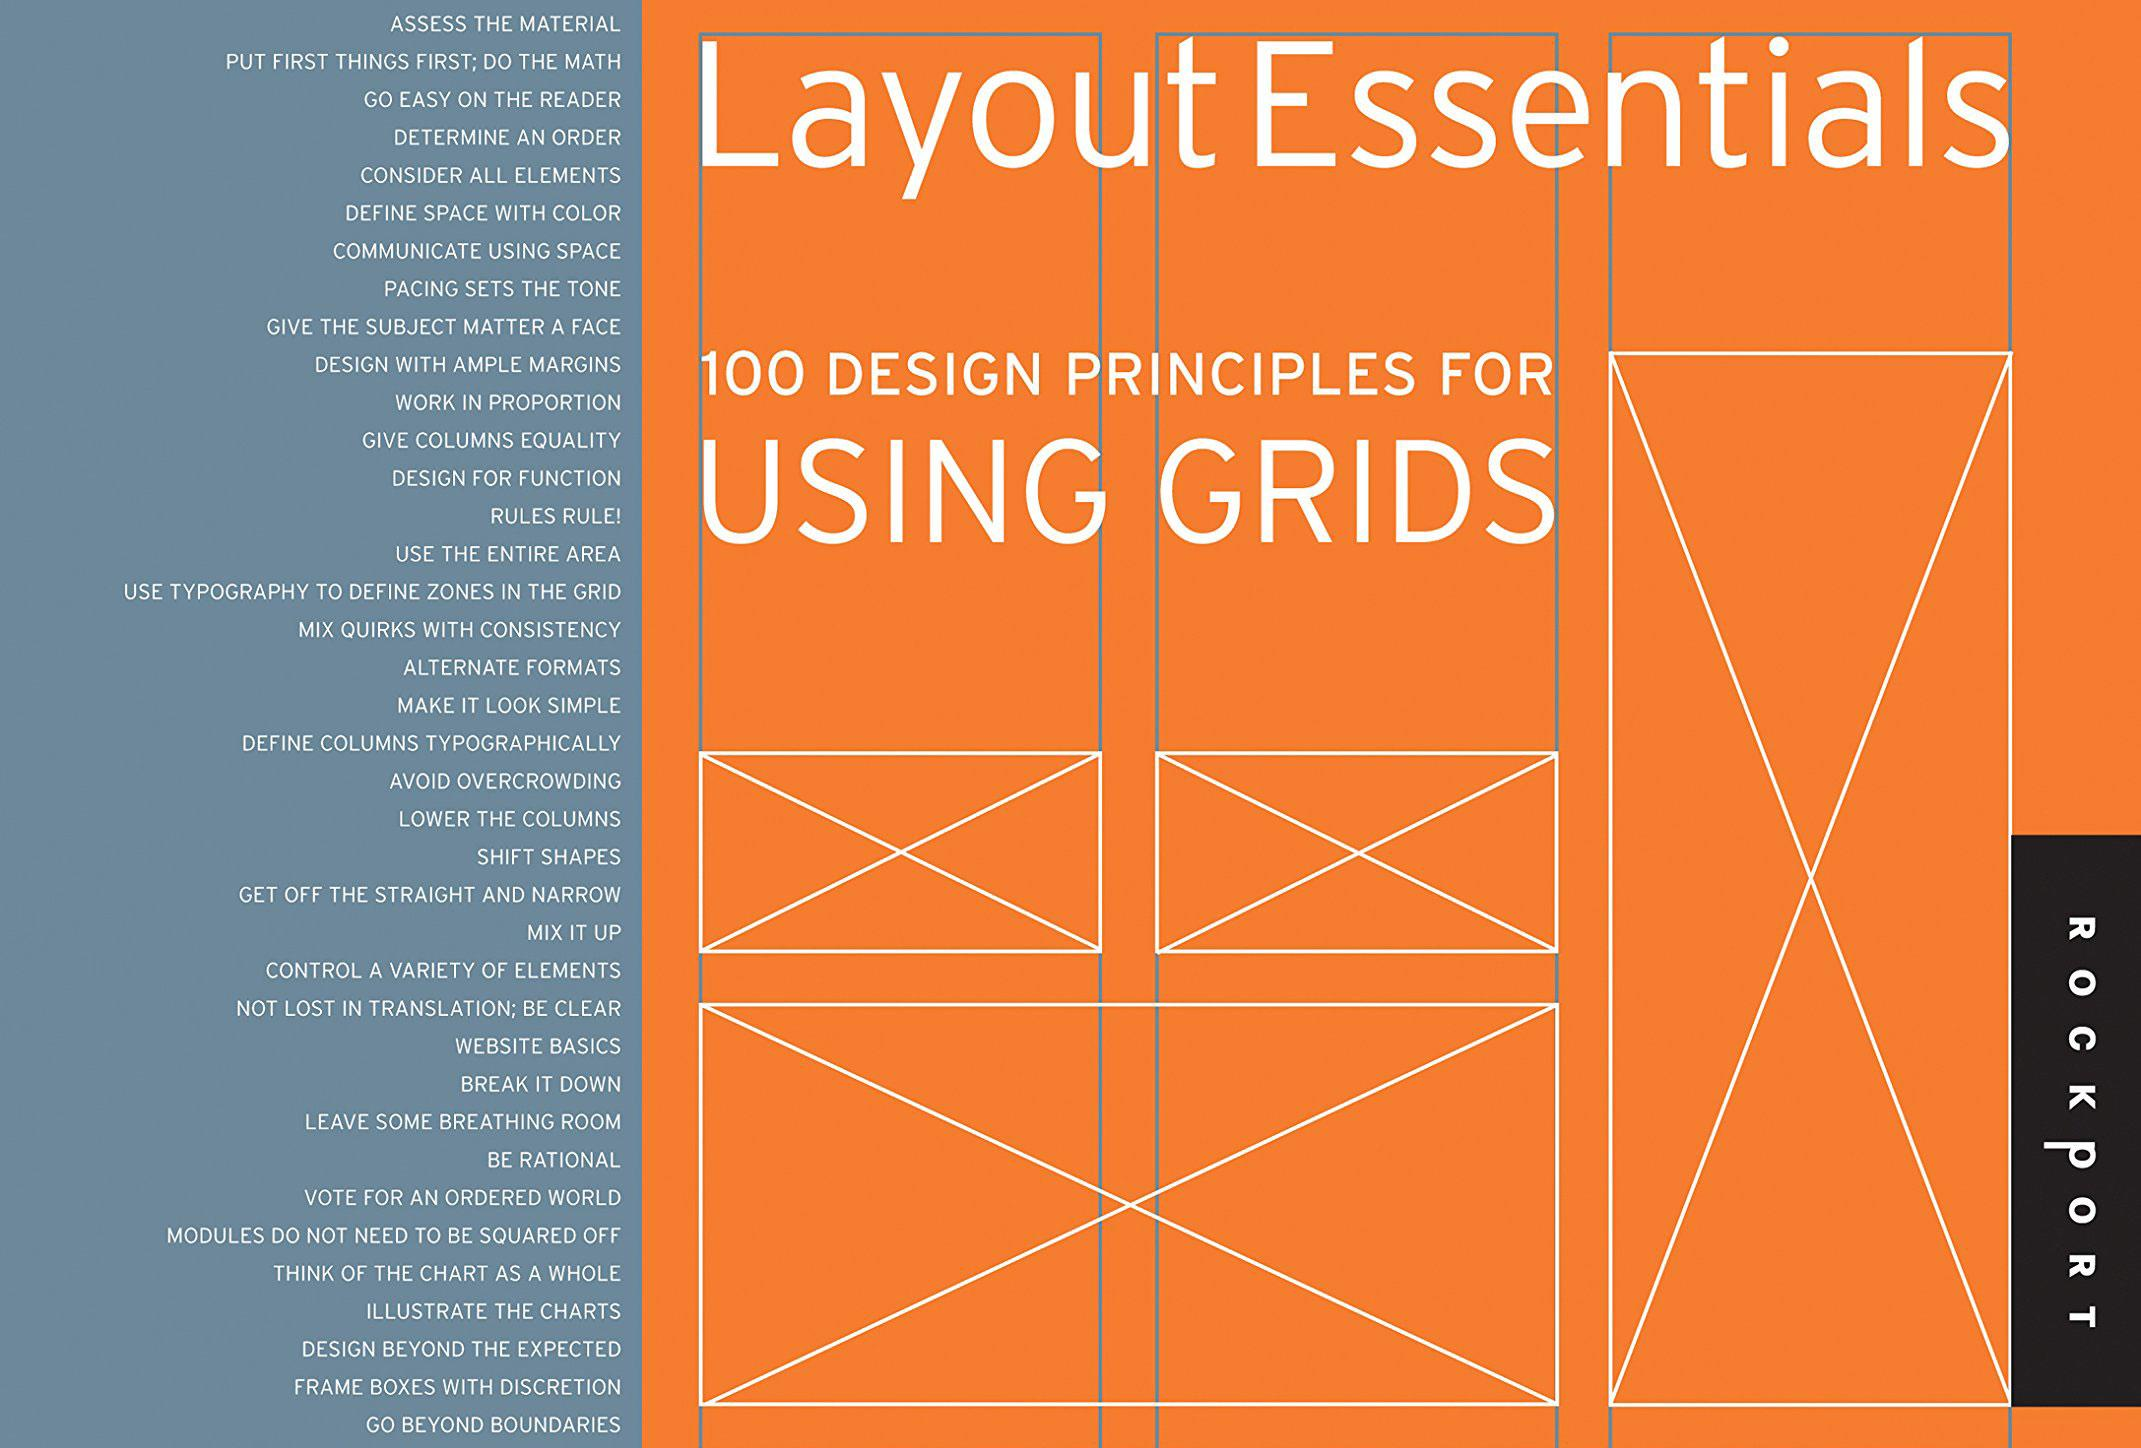 You need to know the rules of using grids before you can break them